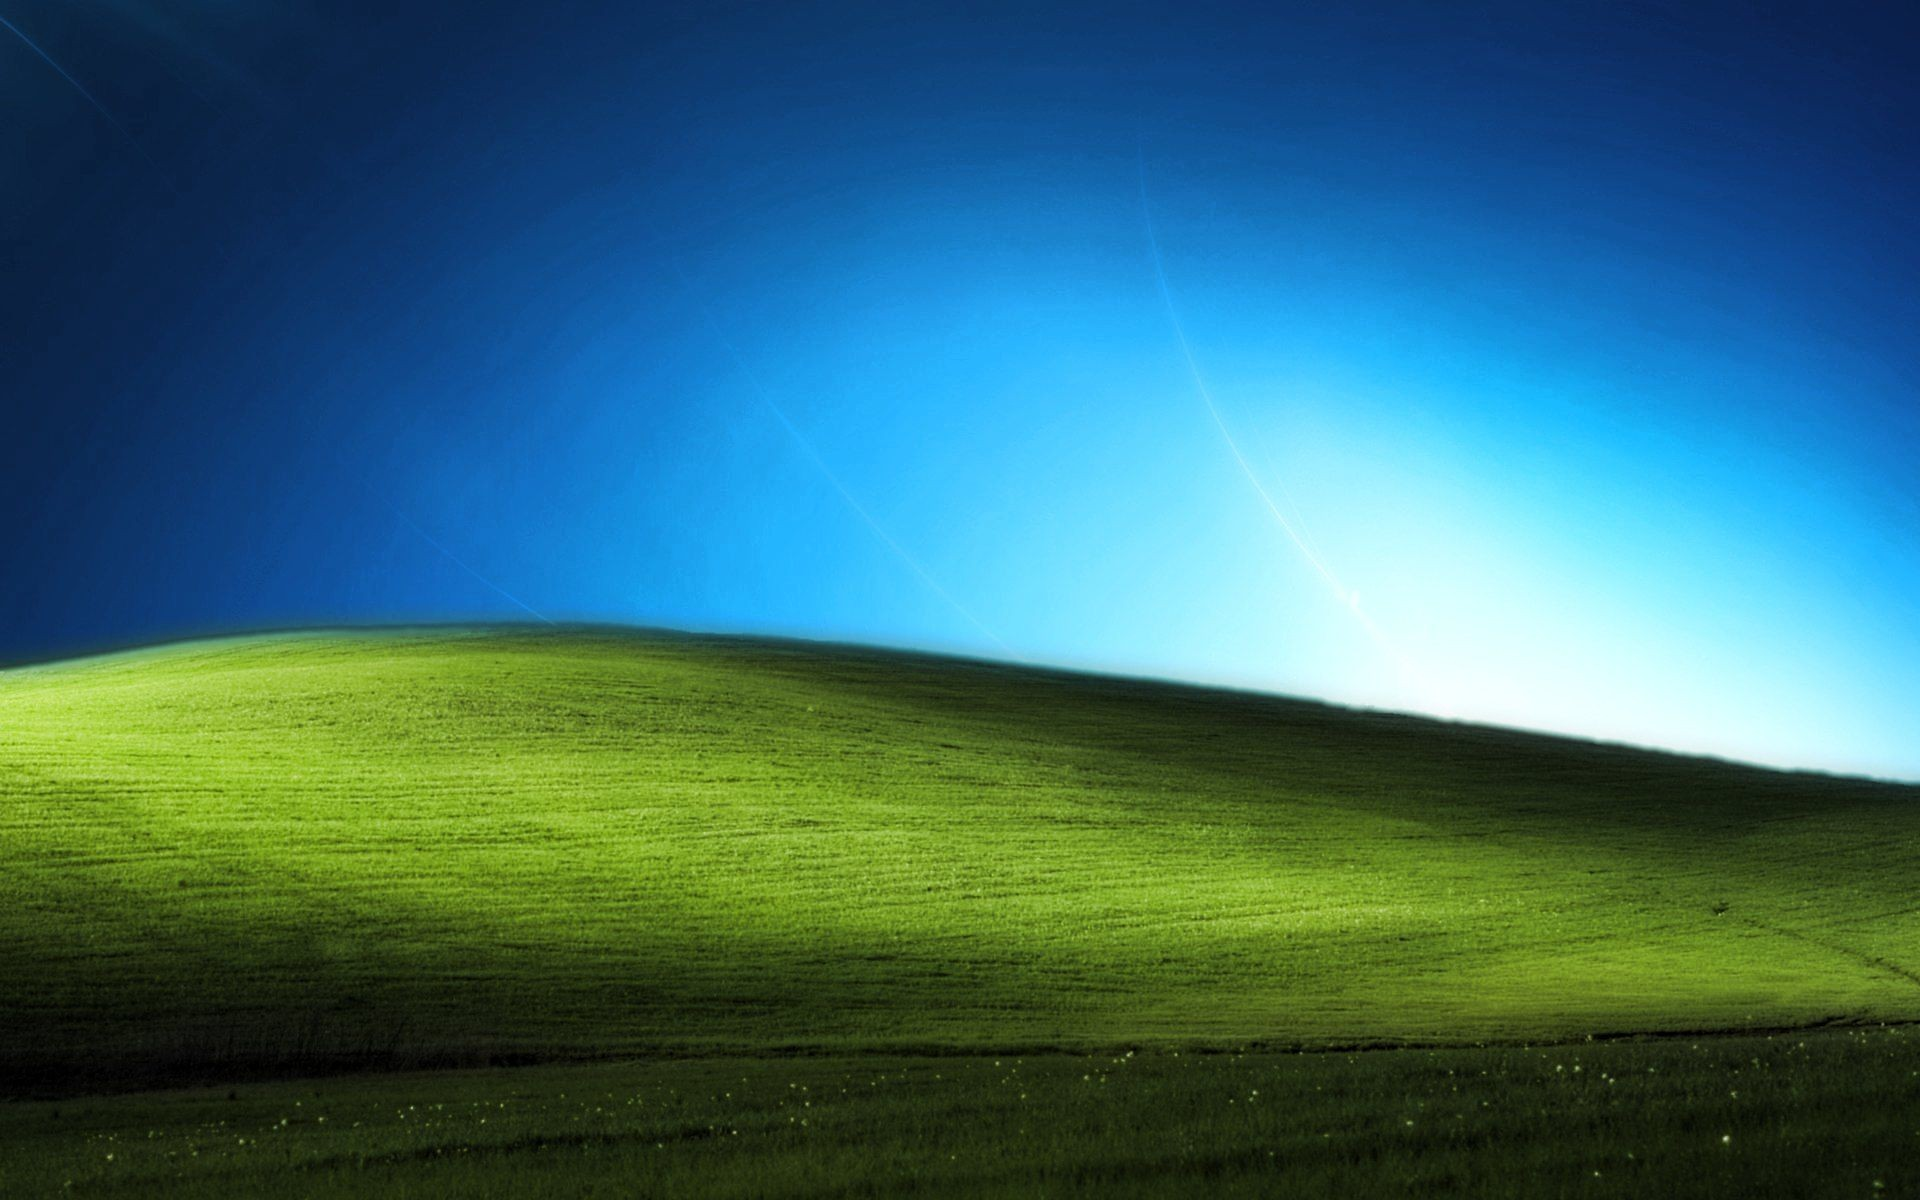 Windows photo galery download 4shared - Official Site